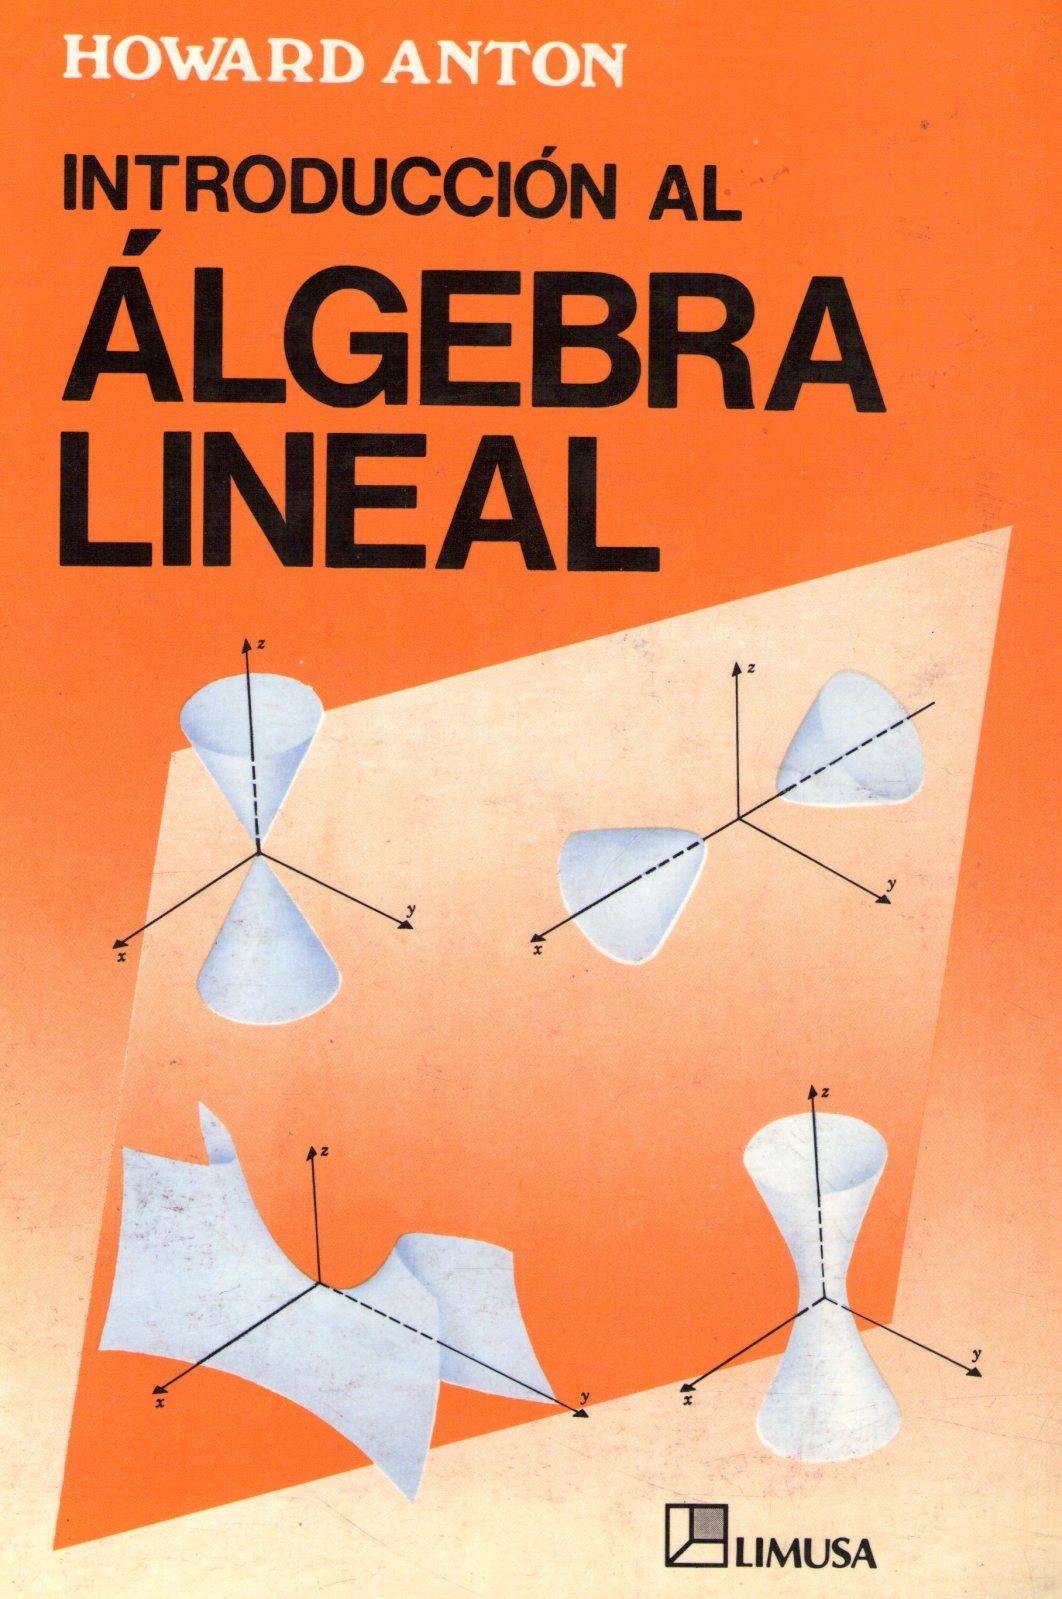 introduccion al algebra lineal anton howard LIbro Pdf